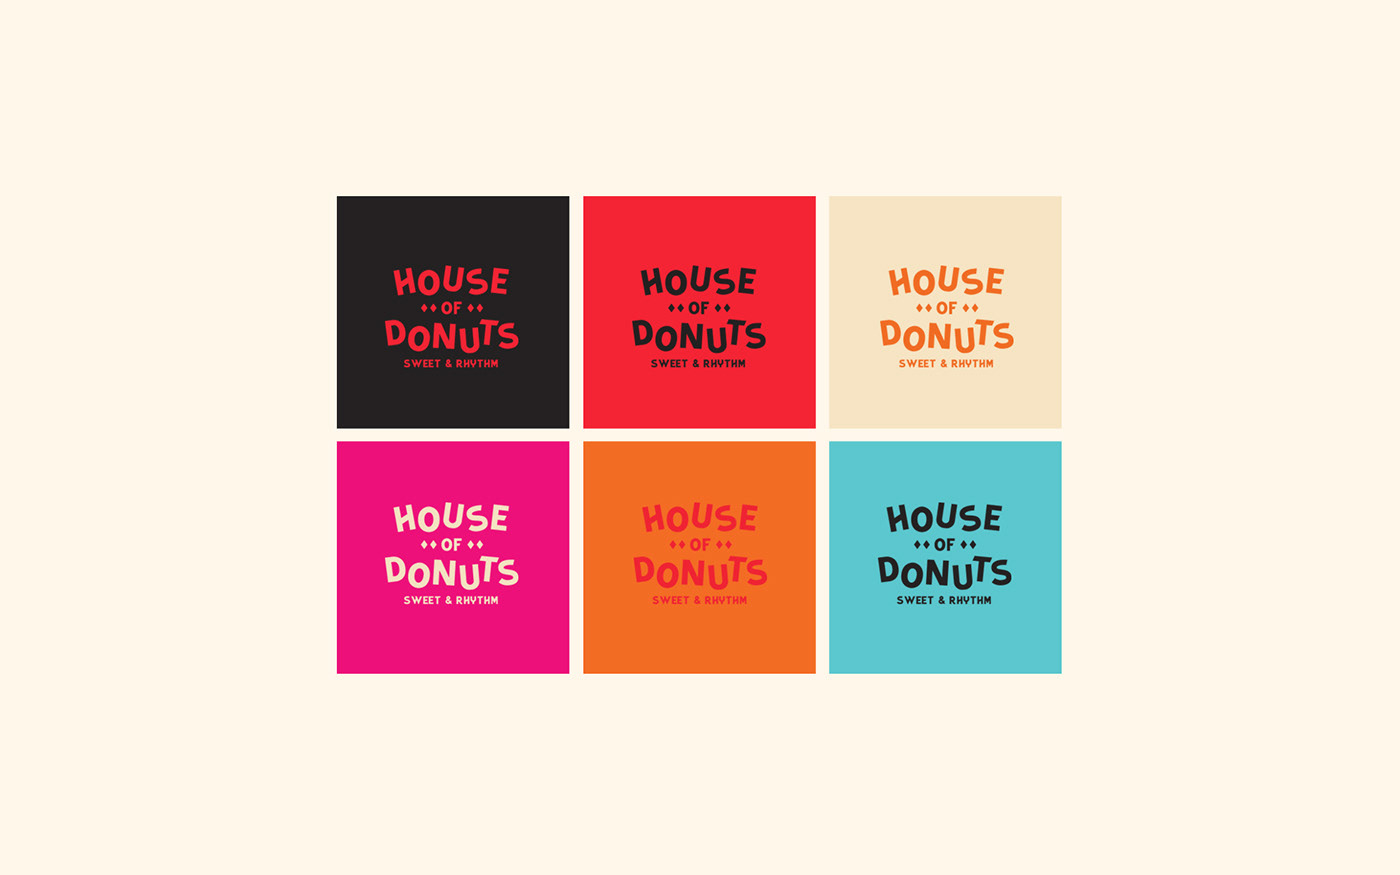 House of Donuts甜甜圈品牌VI设计